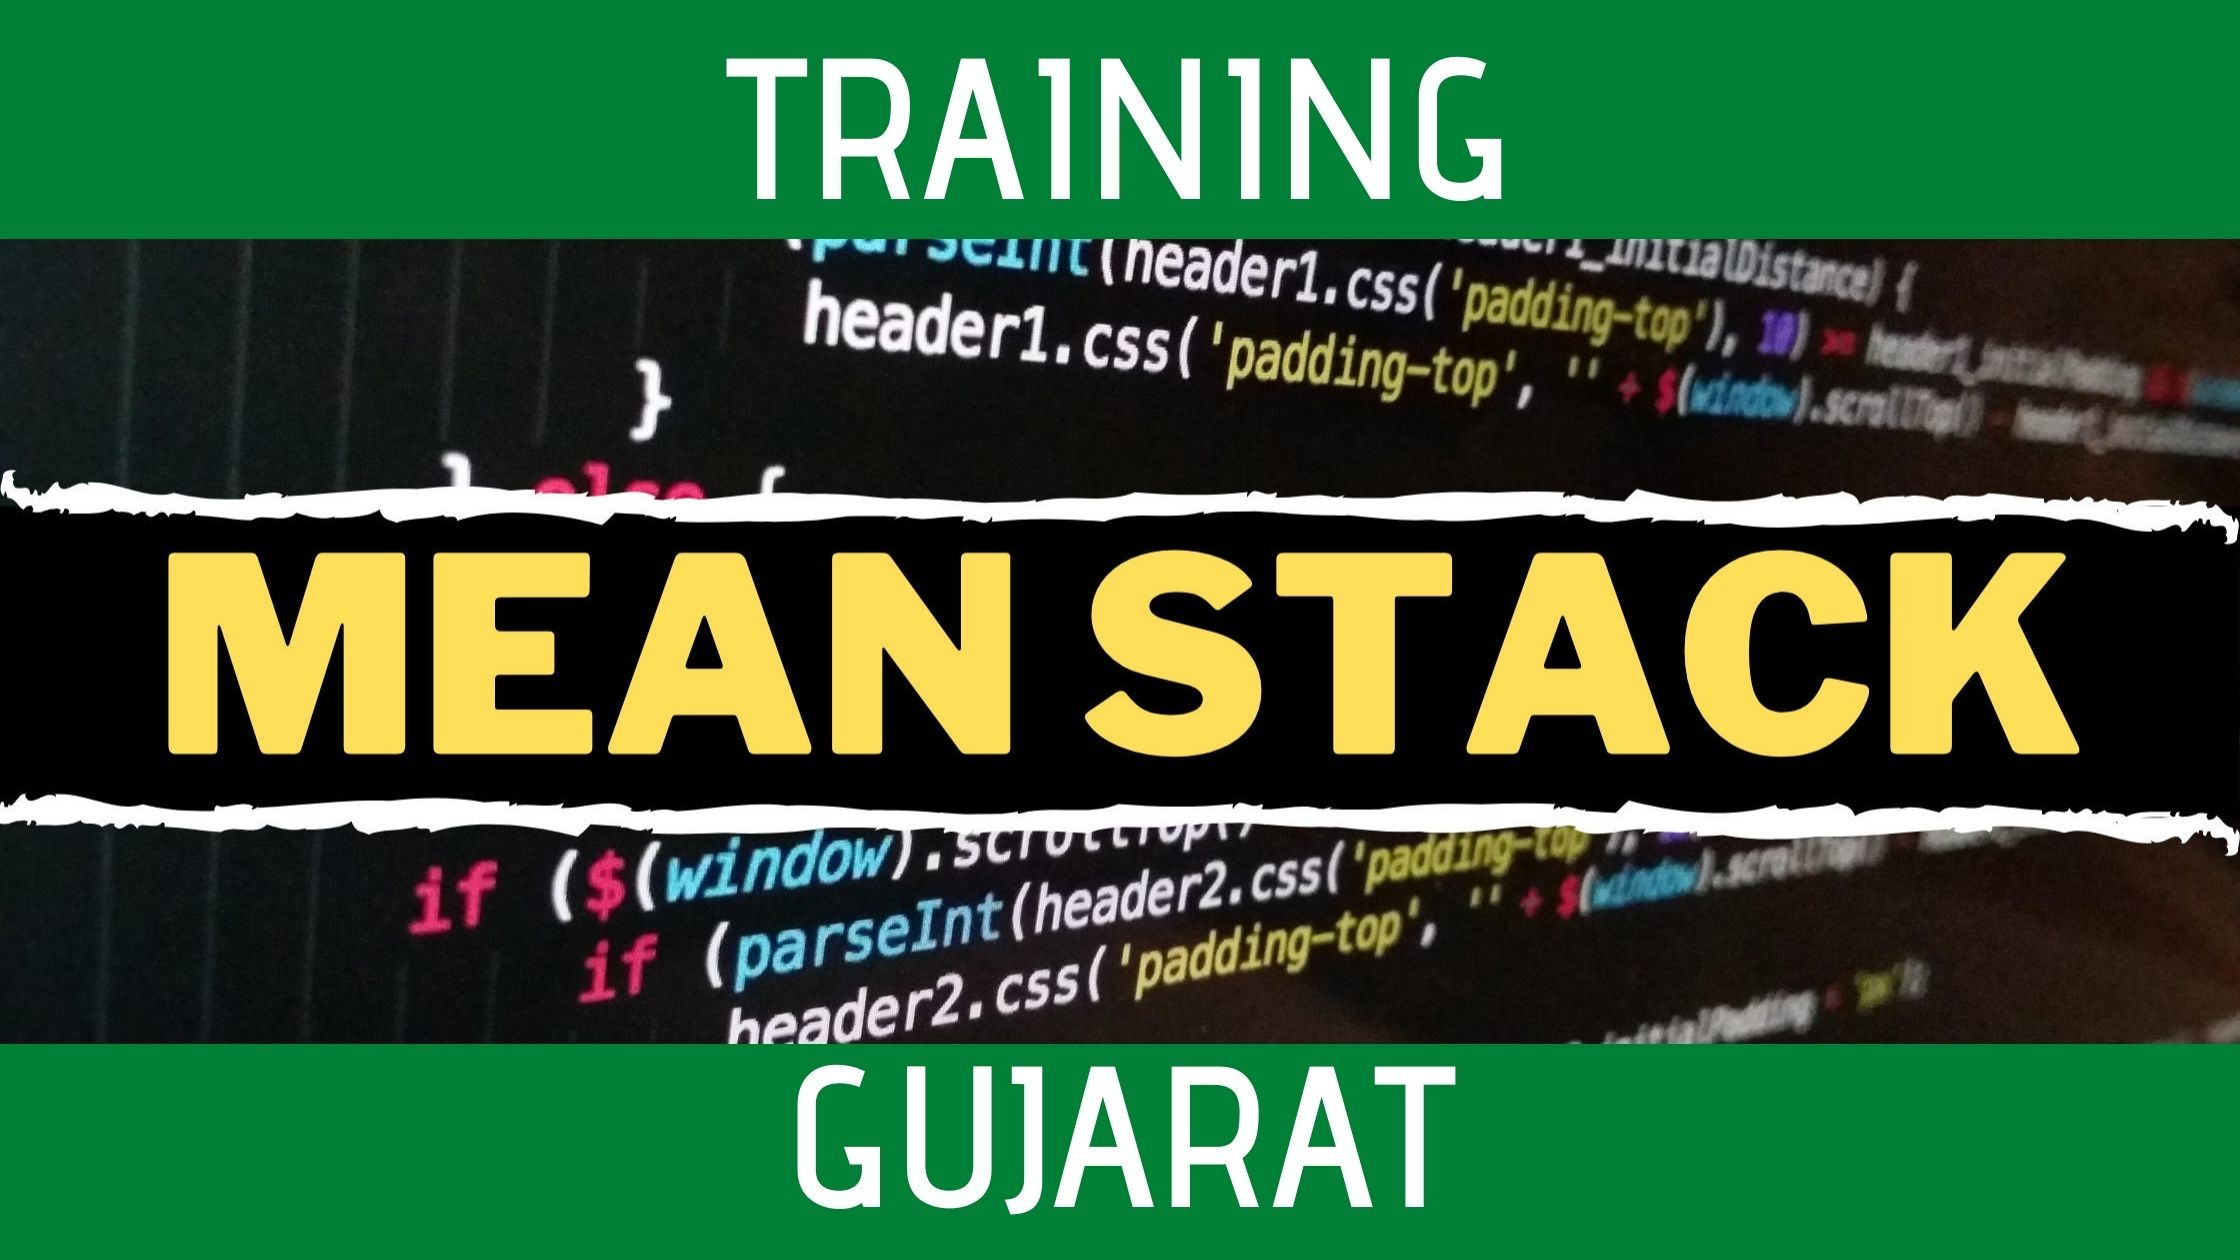 mean_stack_in_gujarat -background.jpeg